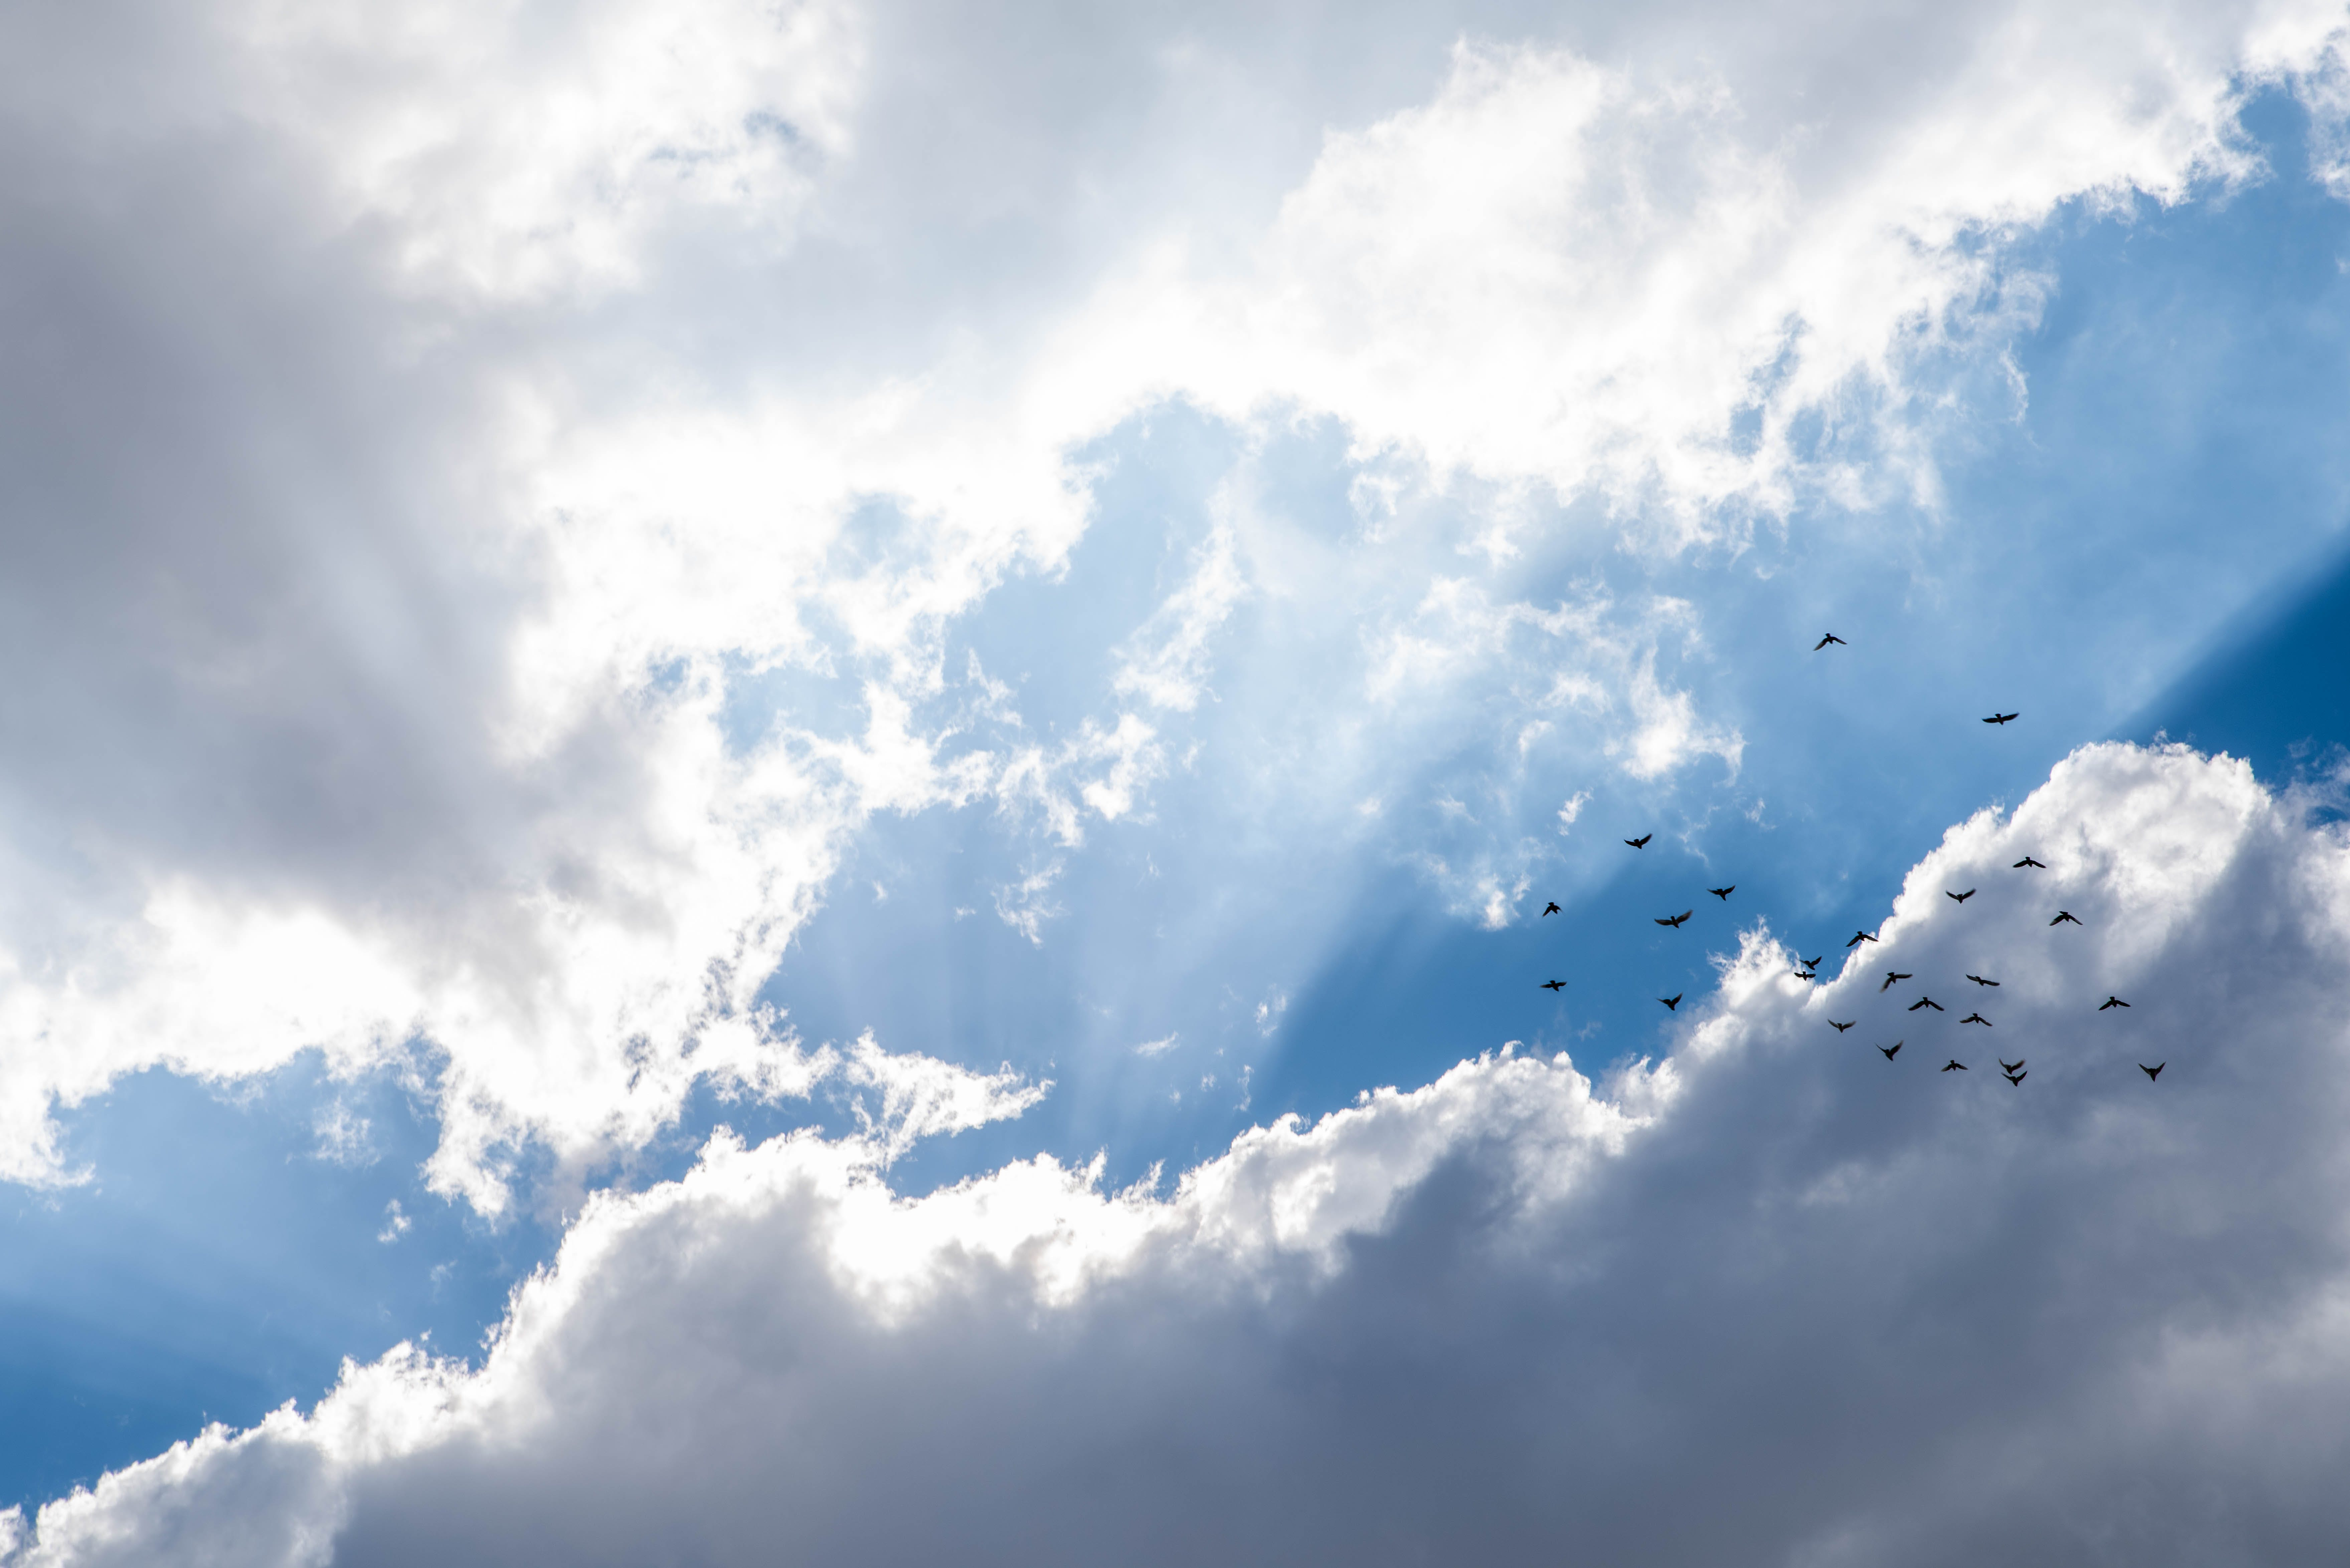 Free stock photo of birds, blue skies, clouds, lights